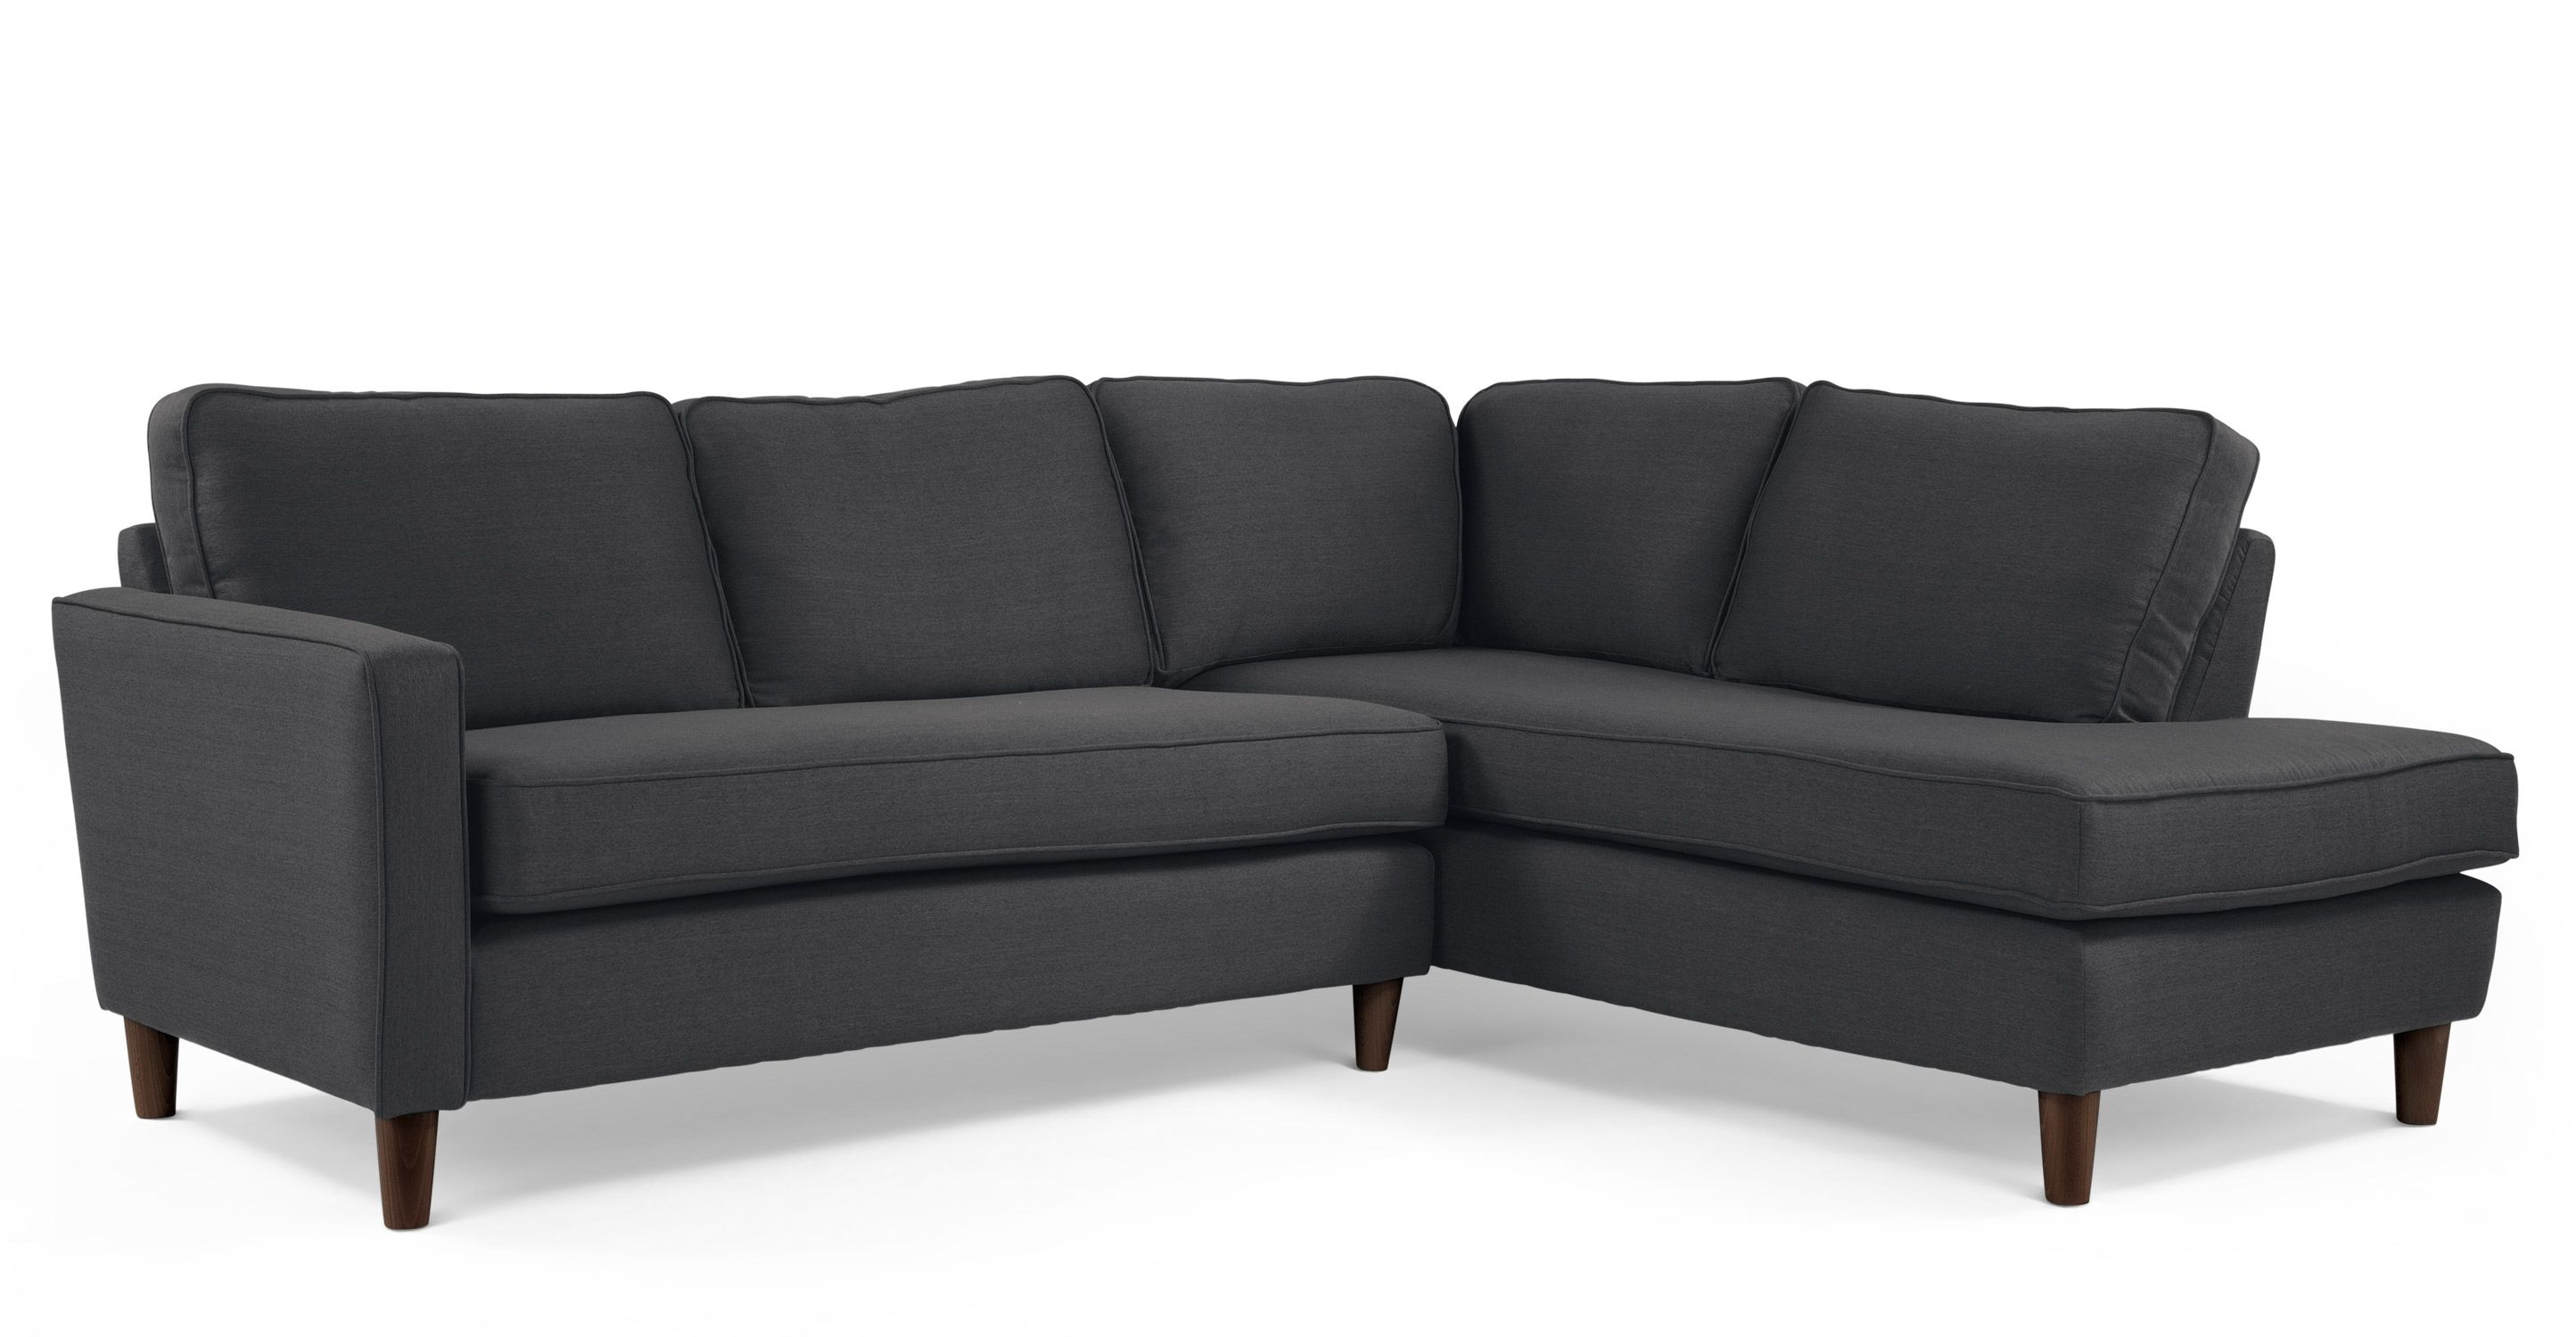 Lugano Right Hand Facing Corner Sofa Group In Ore Grey Made Com Corner Sofa Grey Corner Sofa Bed In Living Room